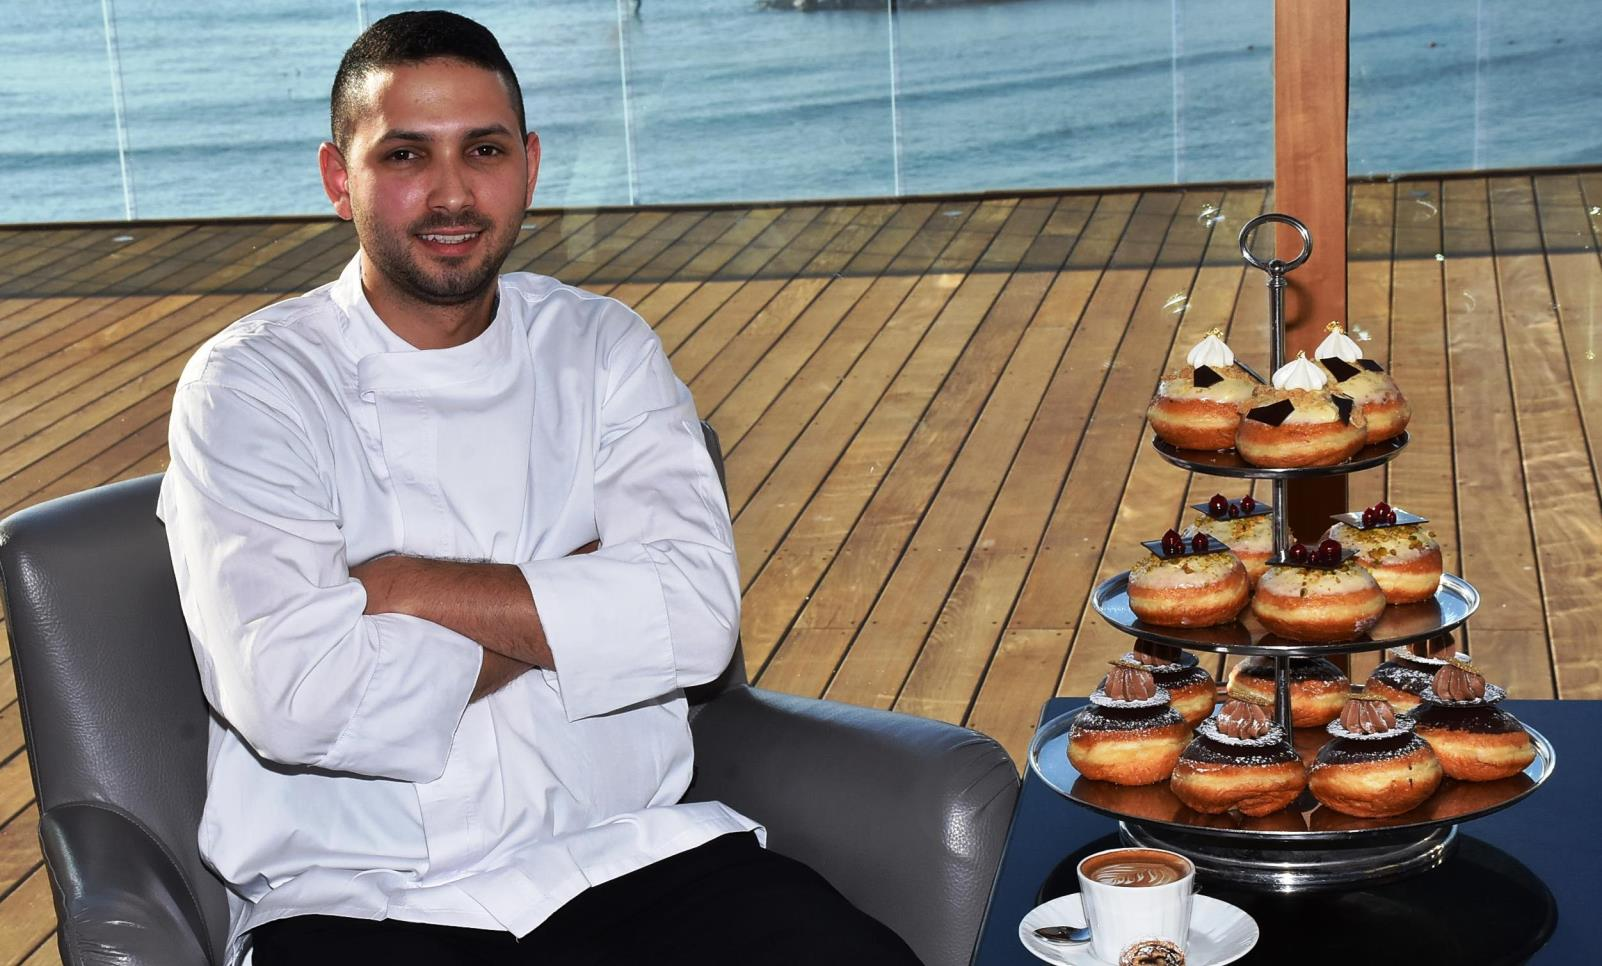 Tel Aviv Hilton pastry chef Idan Hadad, 26, with his Hanukkah 2016 sufganiyot collection. Photo: courtesy